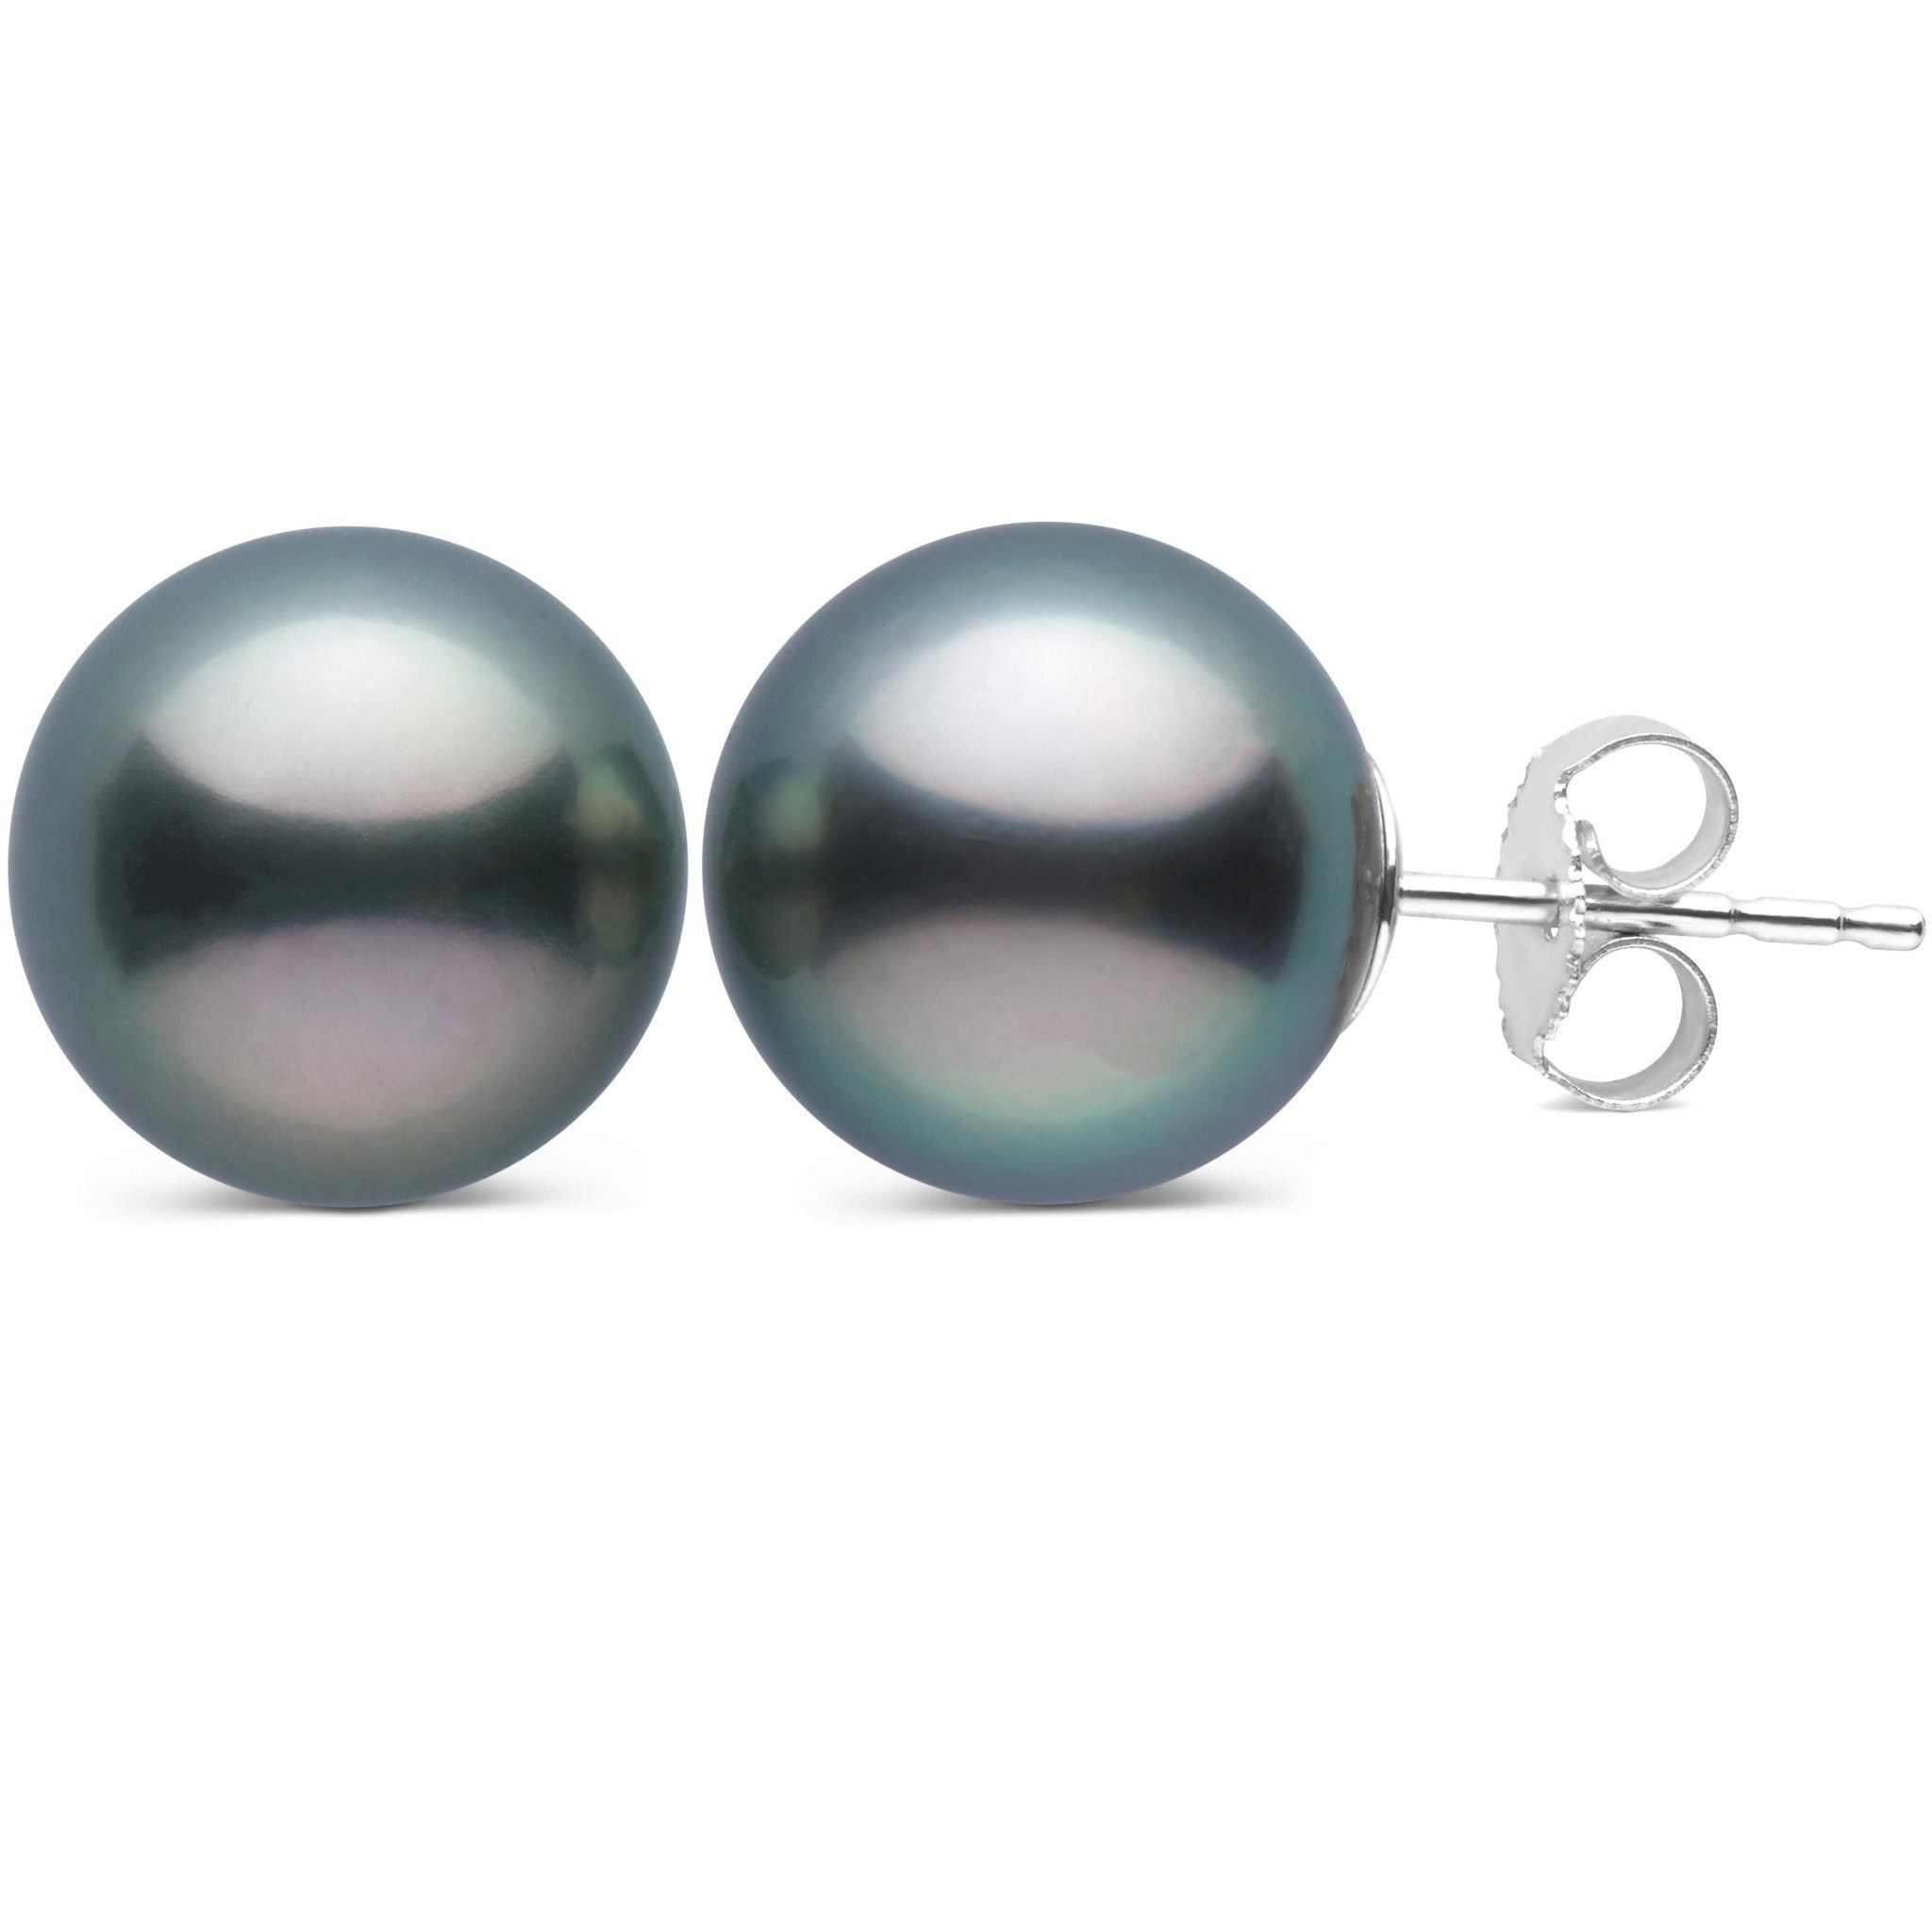 10.0-11.0 mm AAA Tahitian Pearl Stud Earrings